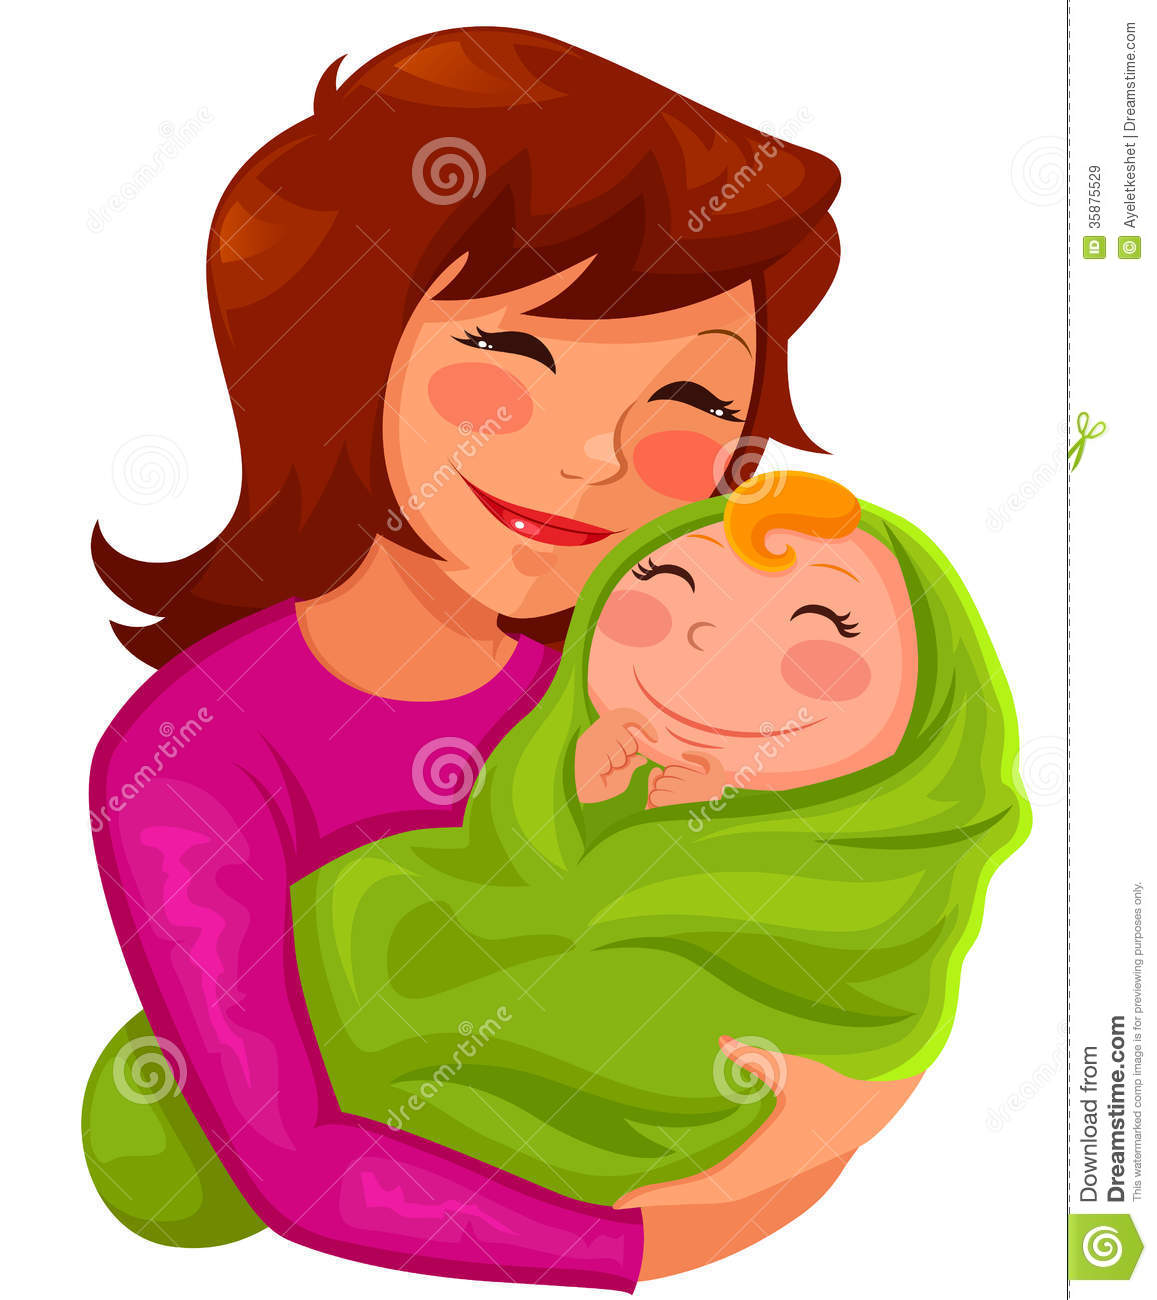 Hugging clipart toddler. Mother and baby panda